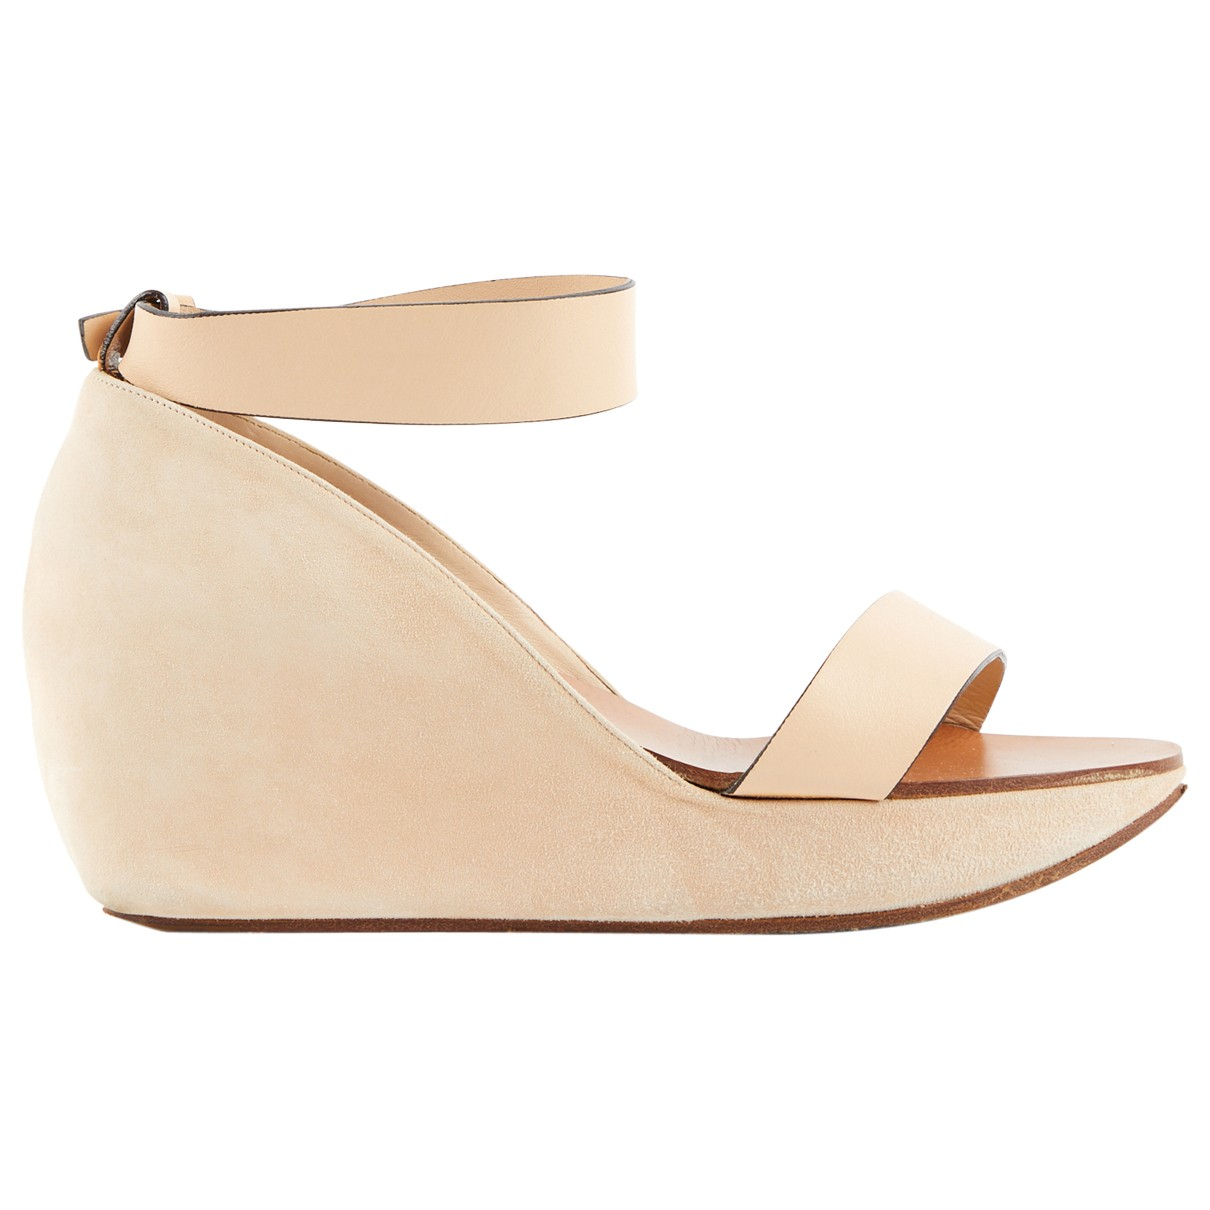 Chloé \N Beige Suede Sandals for Women 38 EU